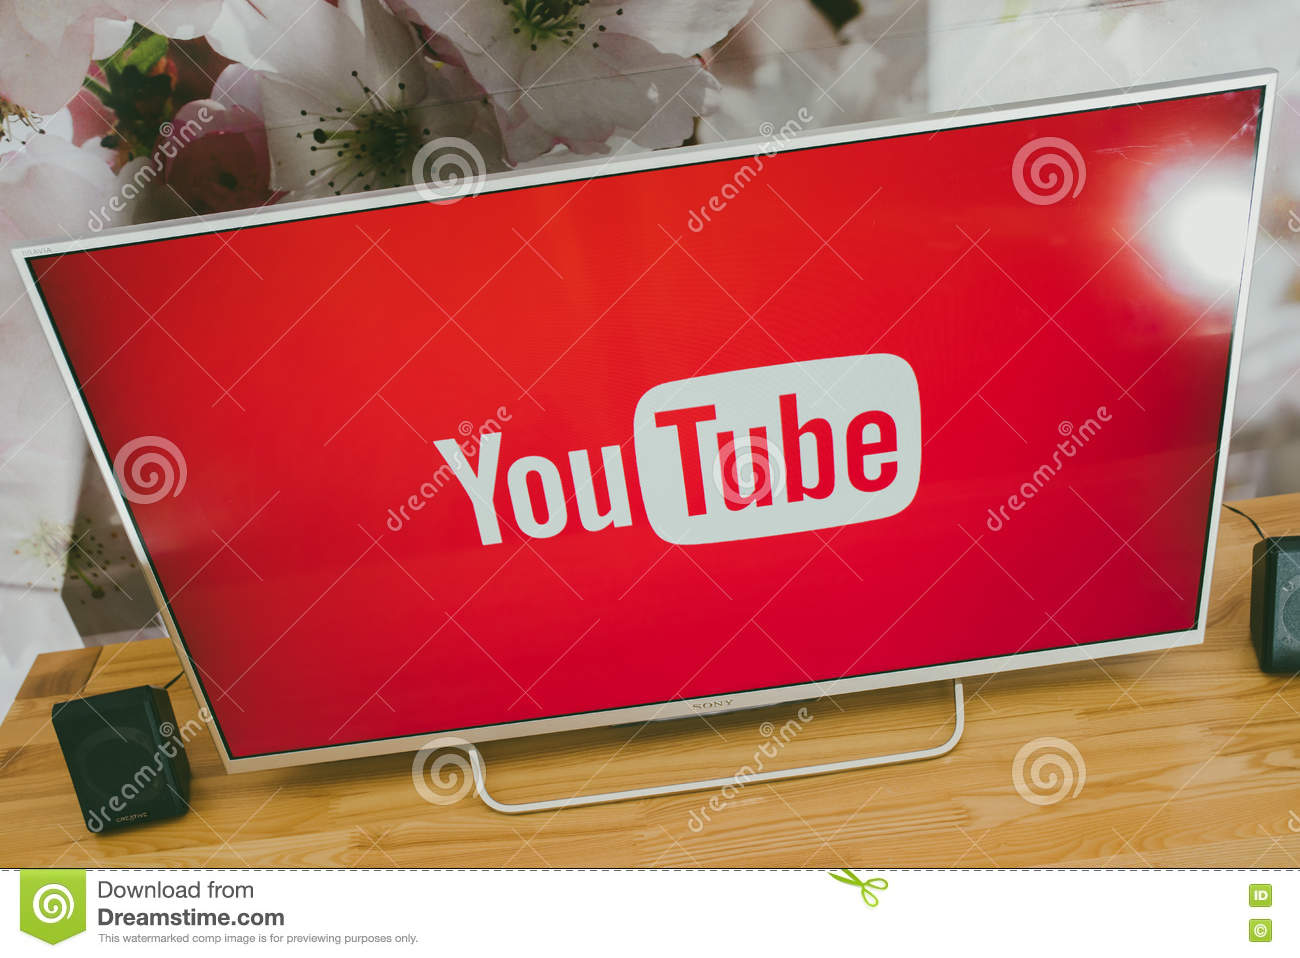 YouTube App On Sony Smart TV Editorial Stock Photo - Image of